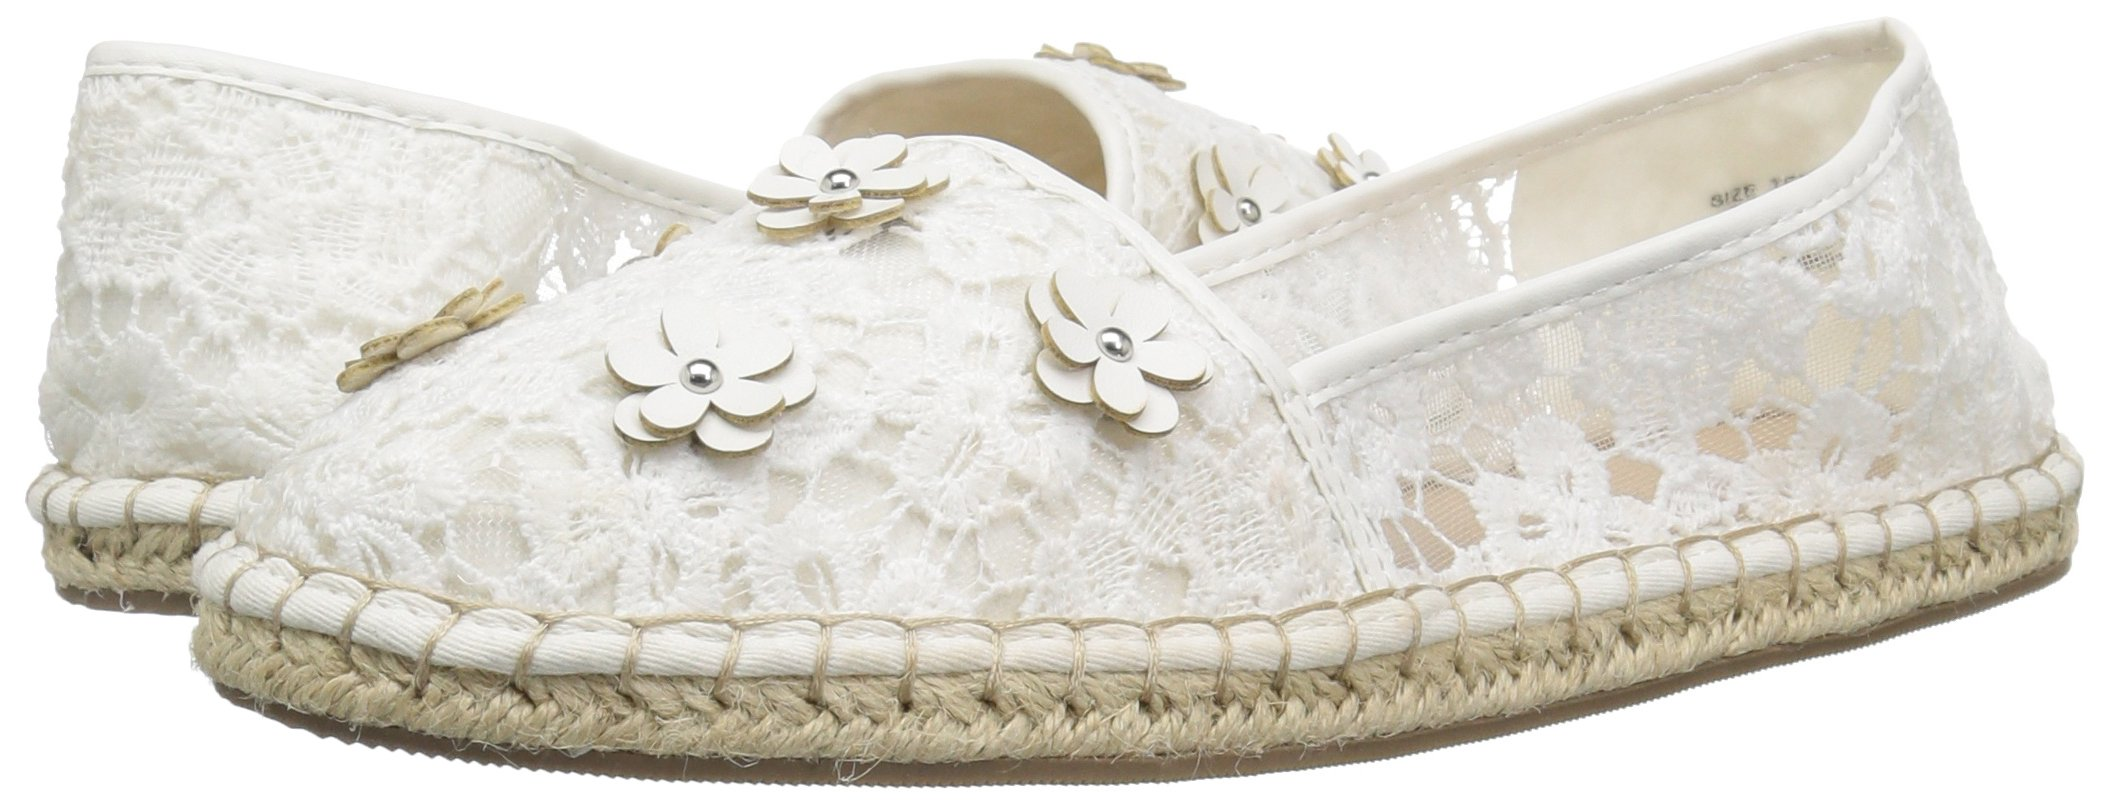 The Children's Place Girls' BG Lace Espadril Slipper, White, Youth 3 Medium US Big Kid by The Children's Place (Image #6)